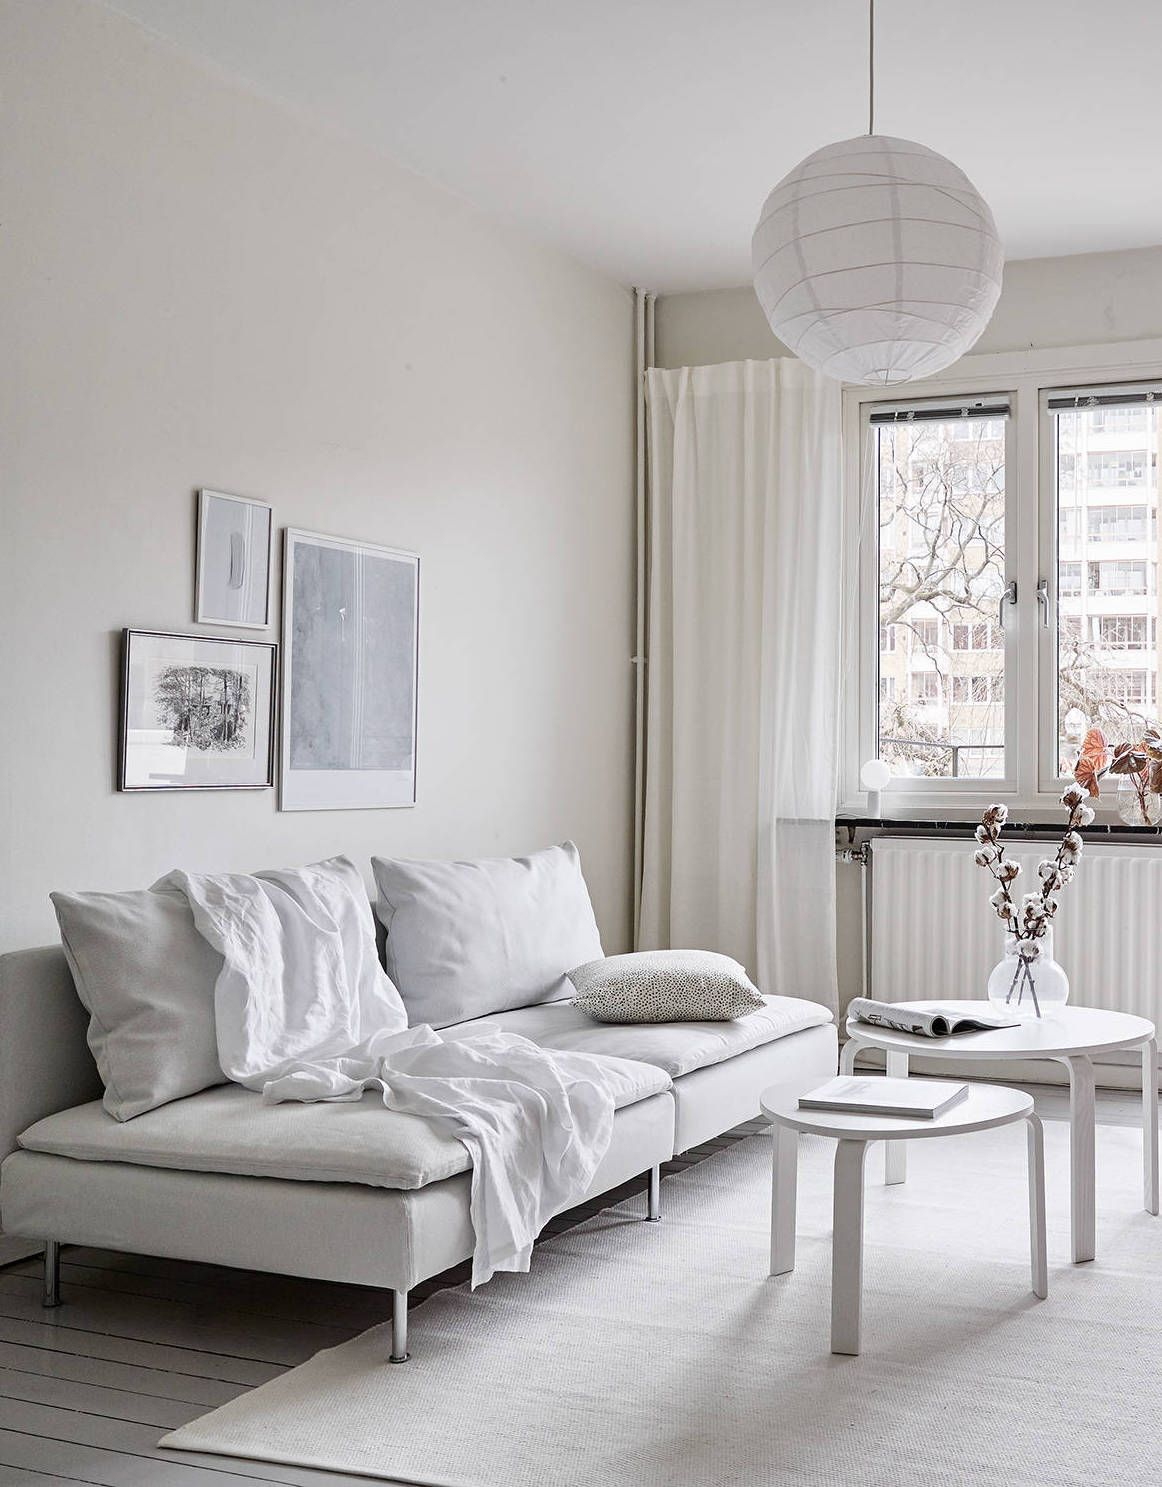 Wohnung Wandgestaltung All White Home With A Vintage Touch New House Diseños